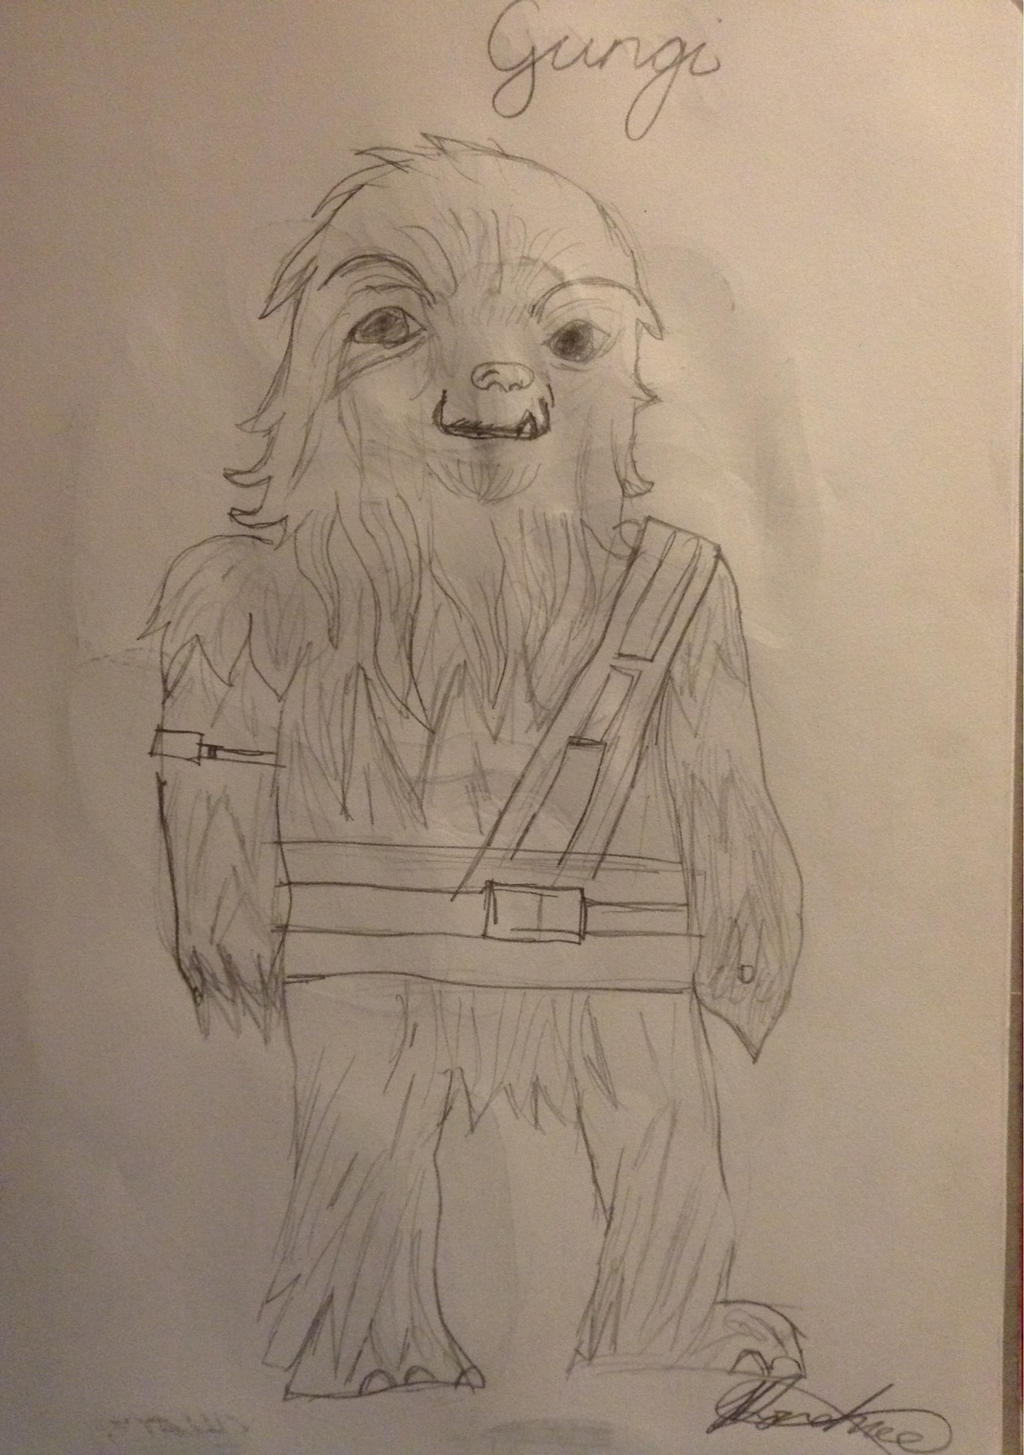 Gungi Jedi Youngling By Jdonehue On Deviantart A rare example of a wookiee in the jedi order, gungi had a lively, inquisitive face whose wide smile was punctuated with a snaggletooth emerging from his lower jaw. deviantart